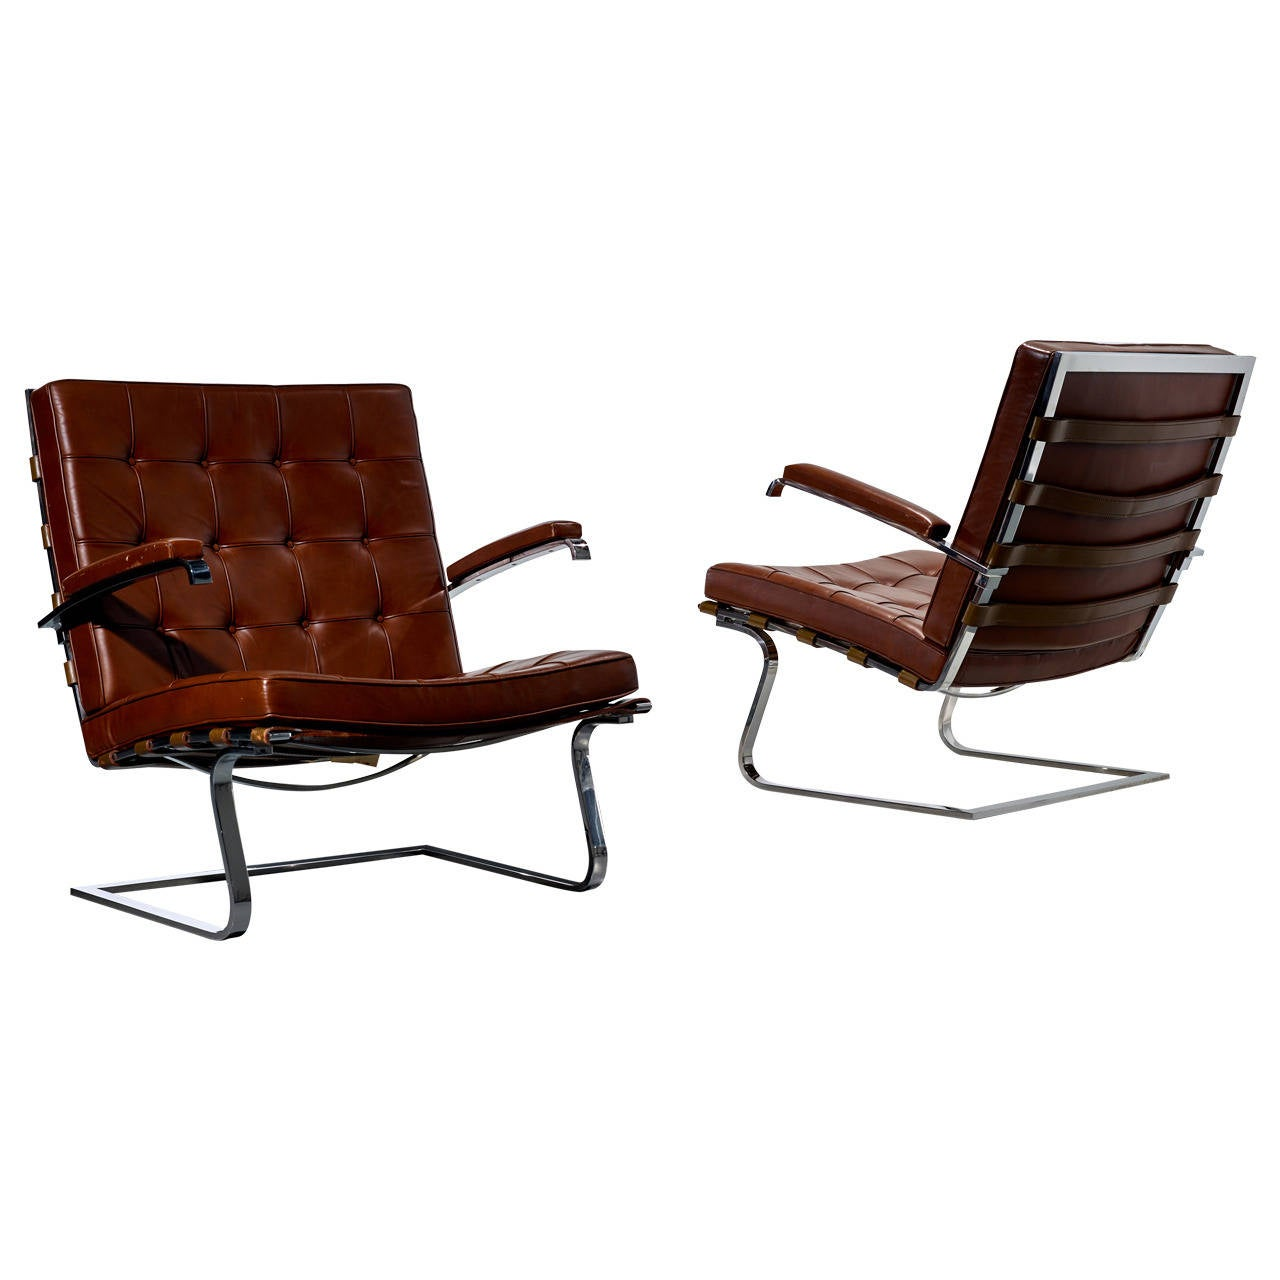 Ludwig Mies Van Der Rohe Tugendhat Armchairs For Knoll International